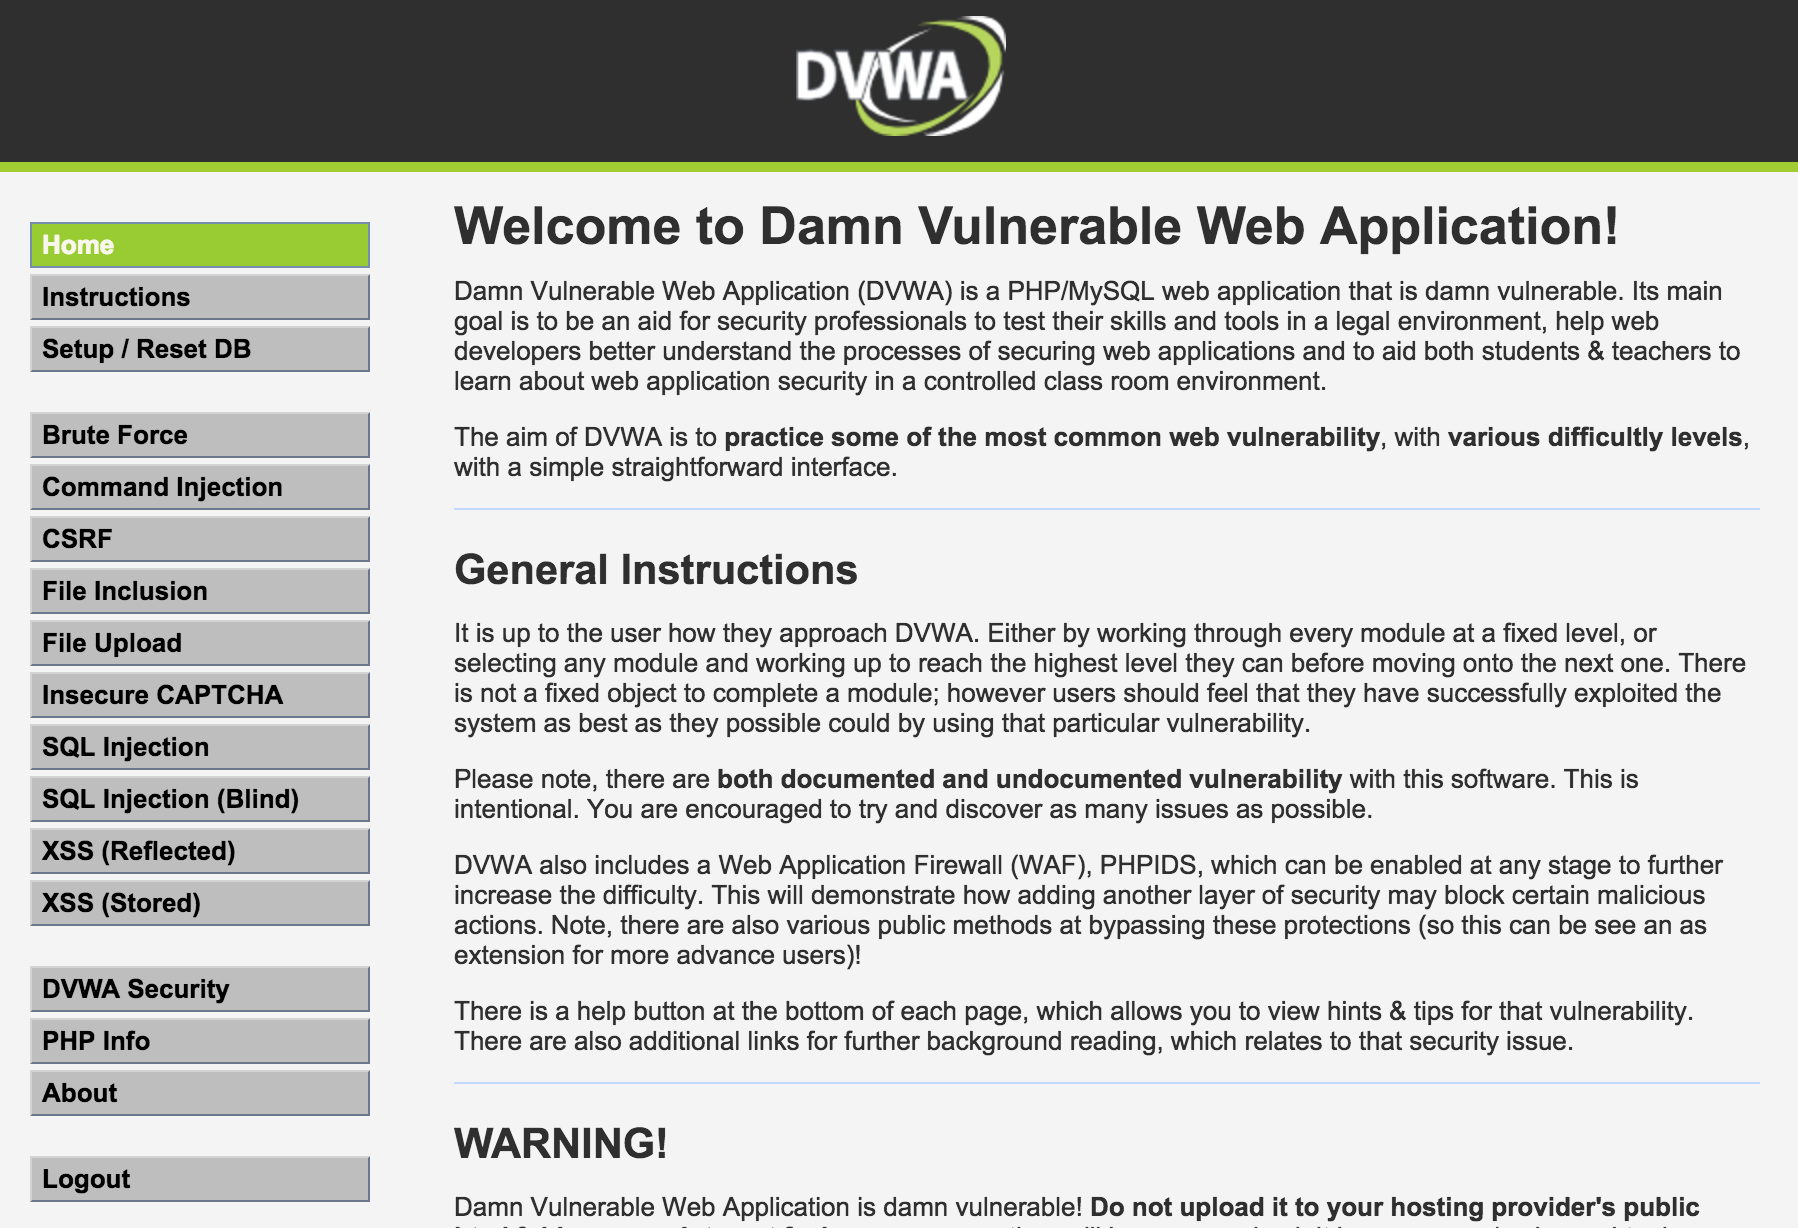 Damn Vulnerable Web Application DVWA